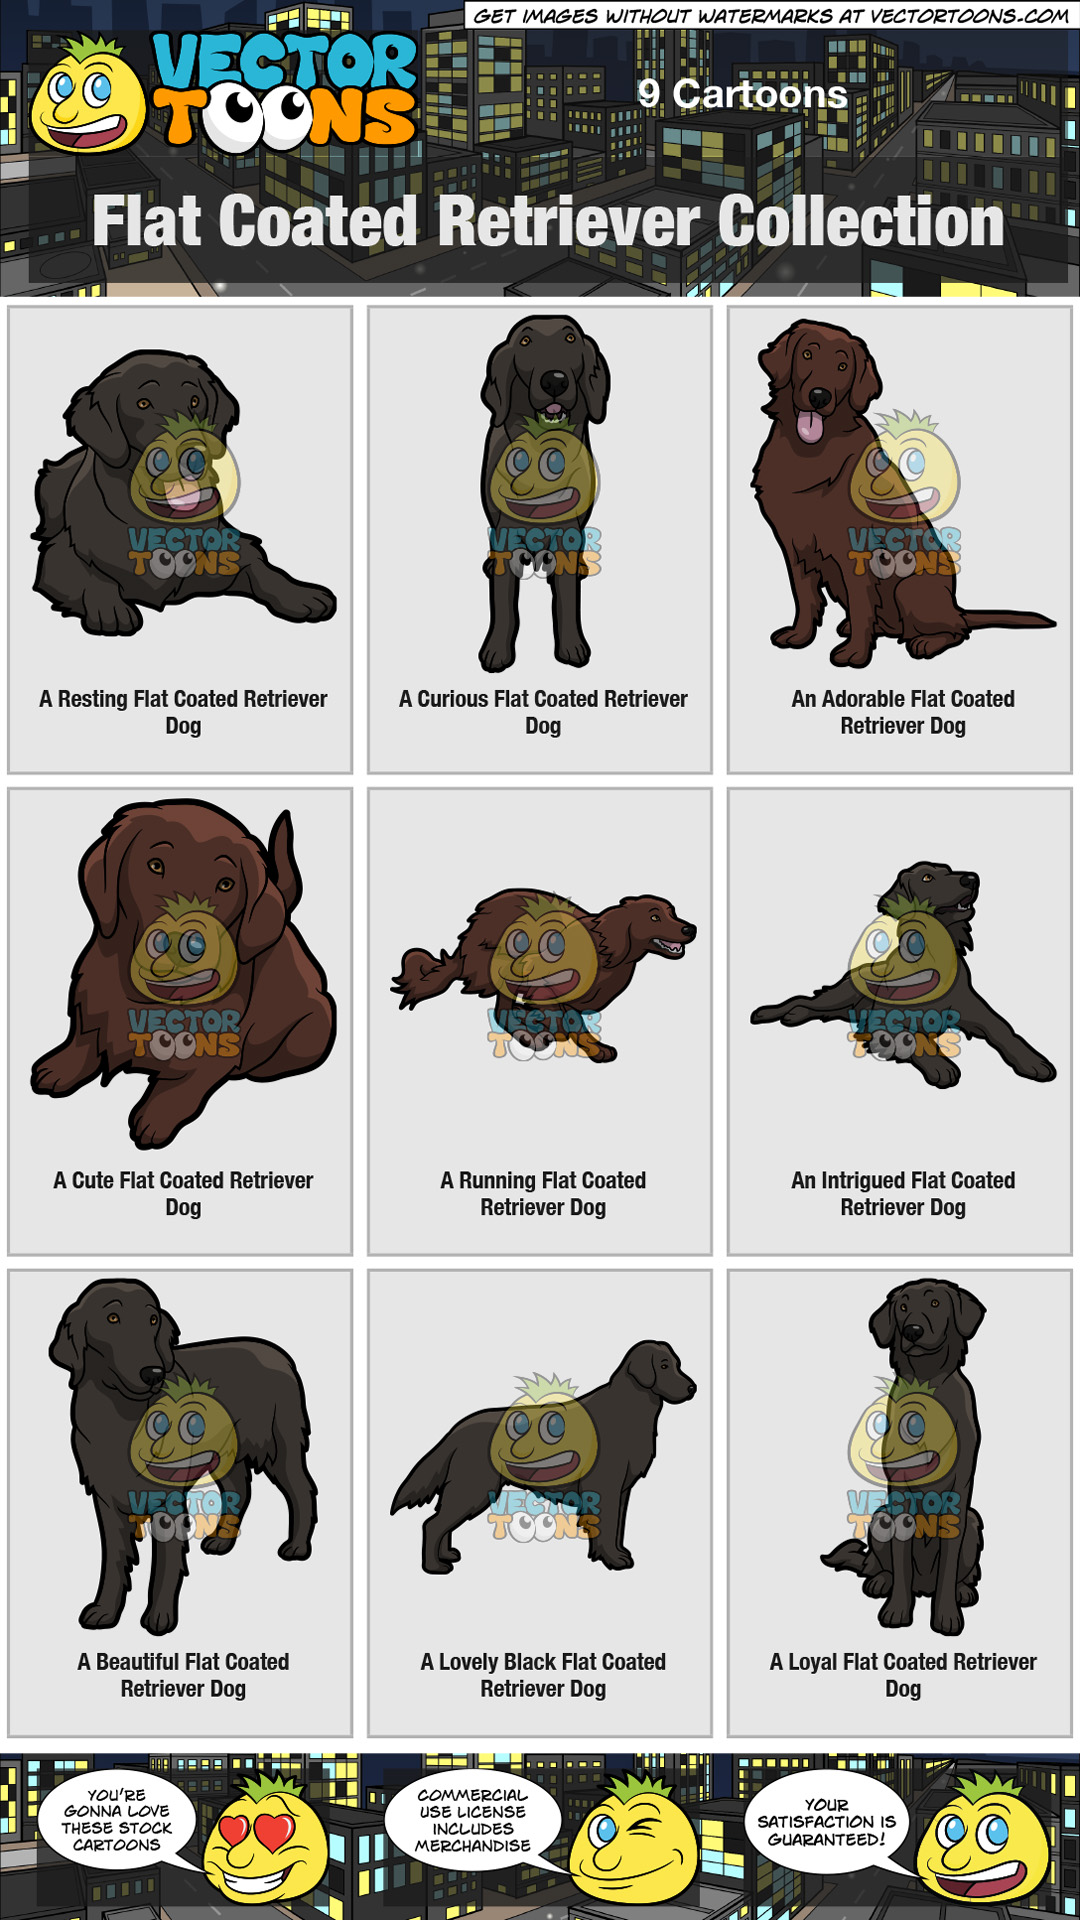 Flat Coated Retriever Collection thumbnail